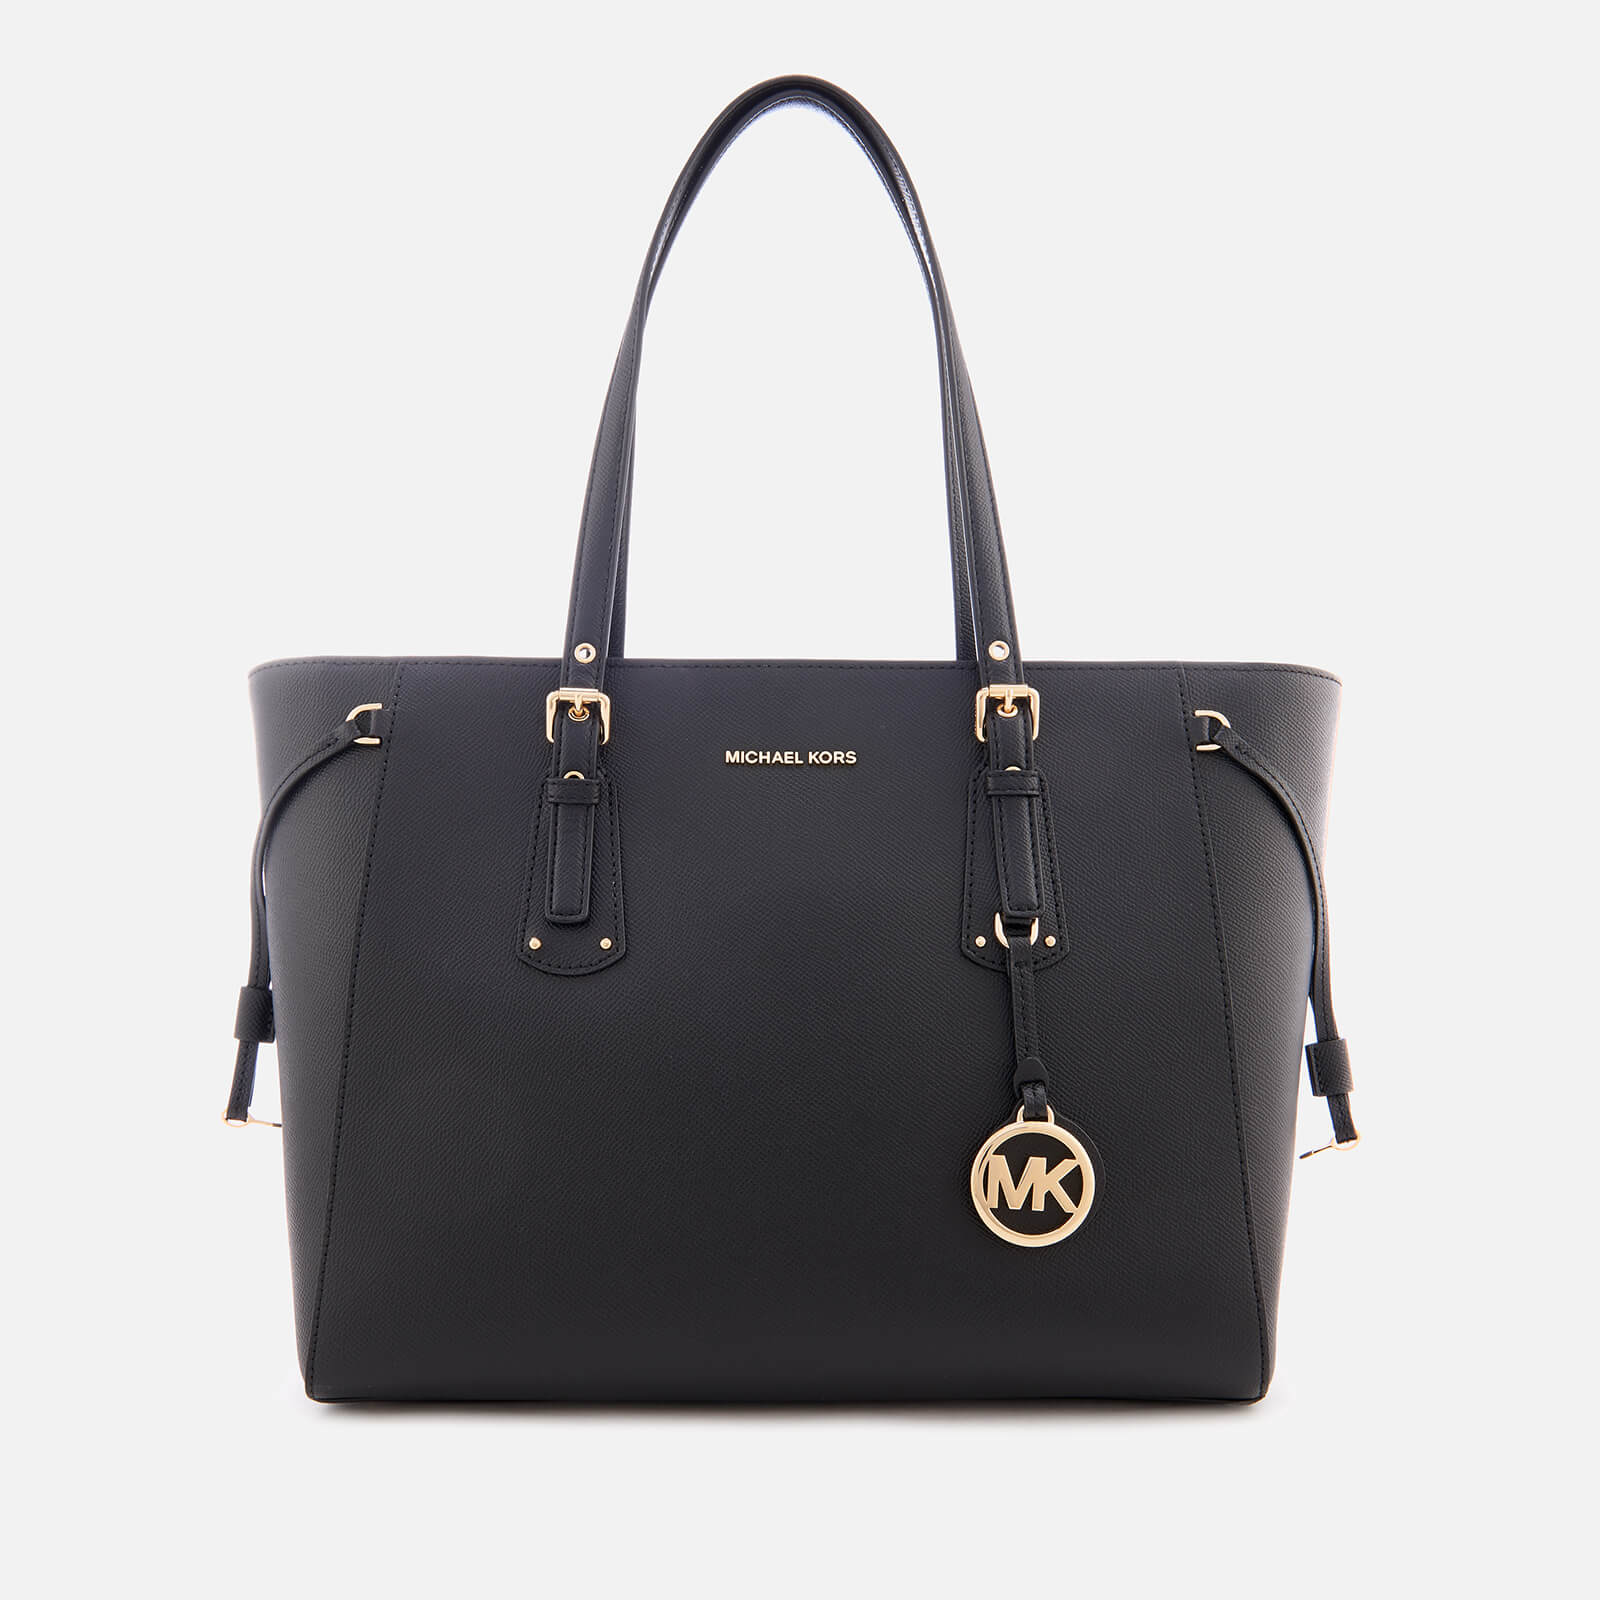 00e2cacd495 MICHAEL MICHAEL KORS Women's Voyager Medium Top Zip Tote Bag - Black